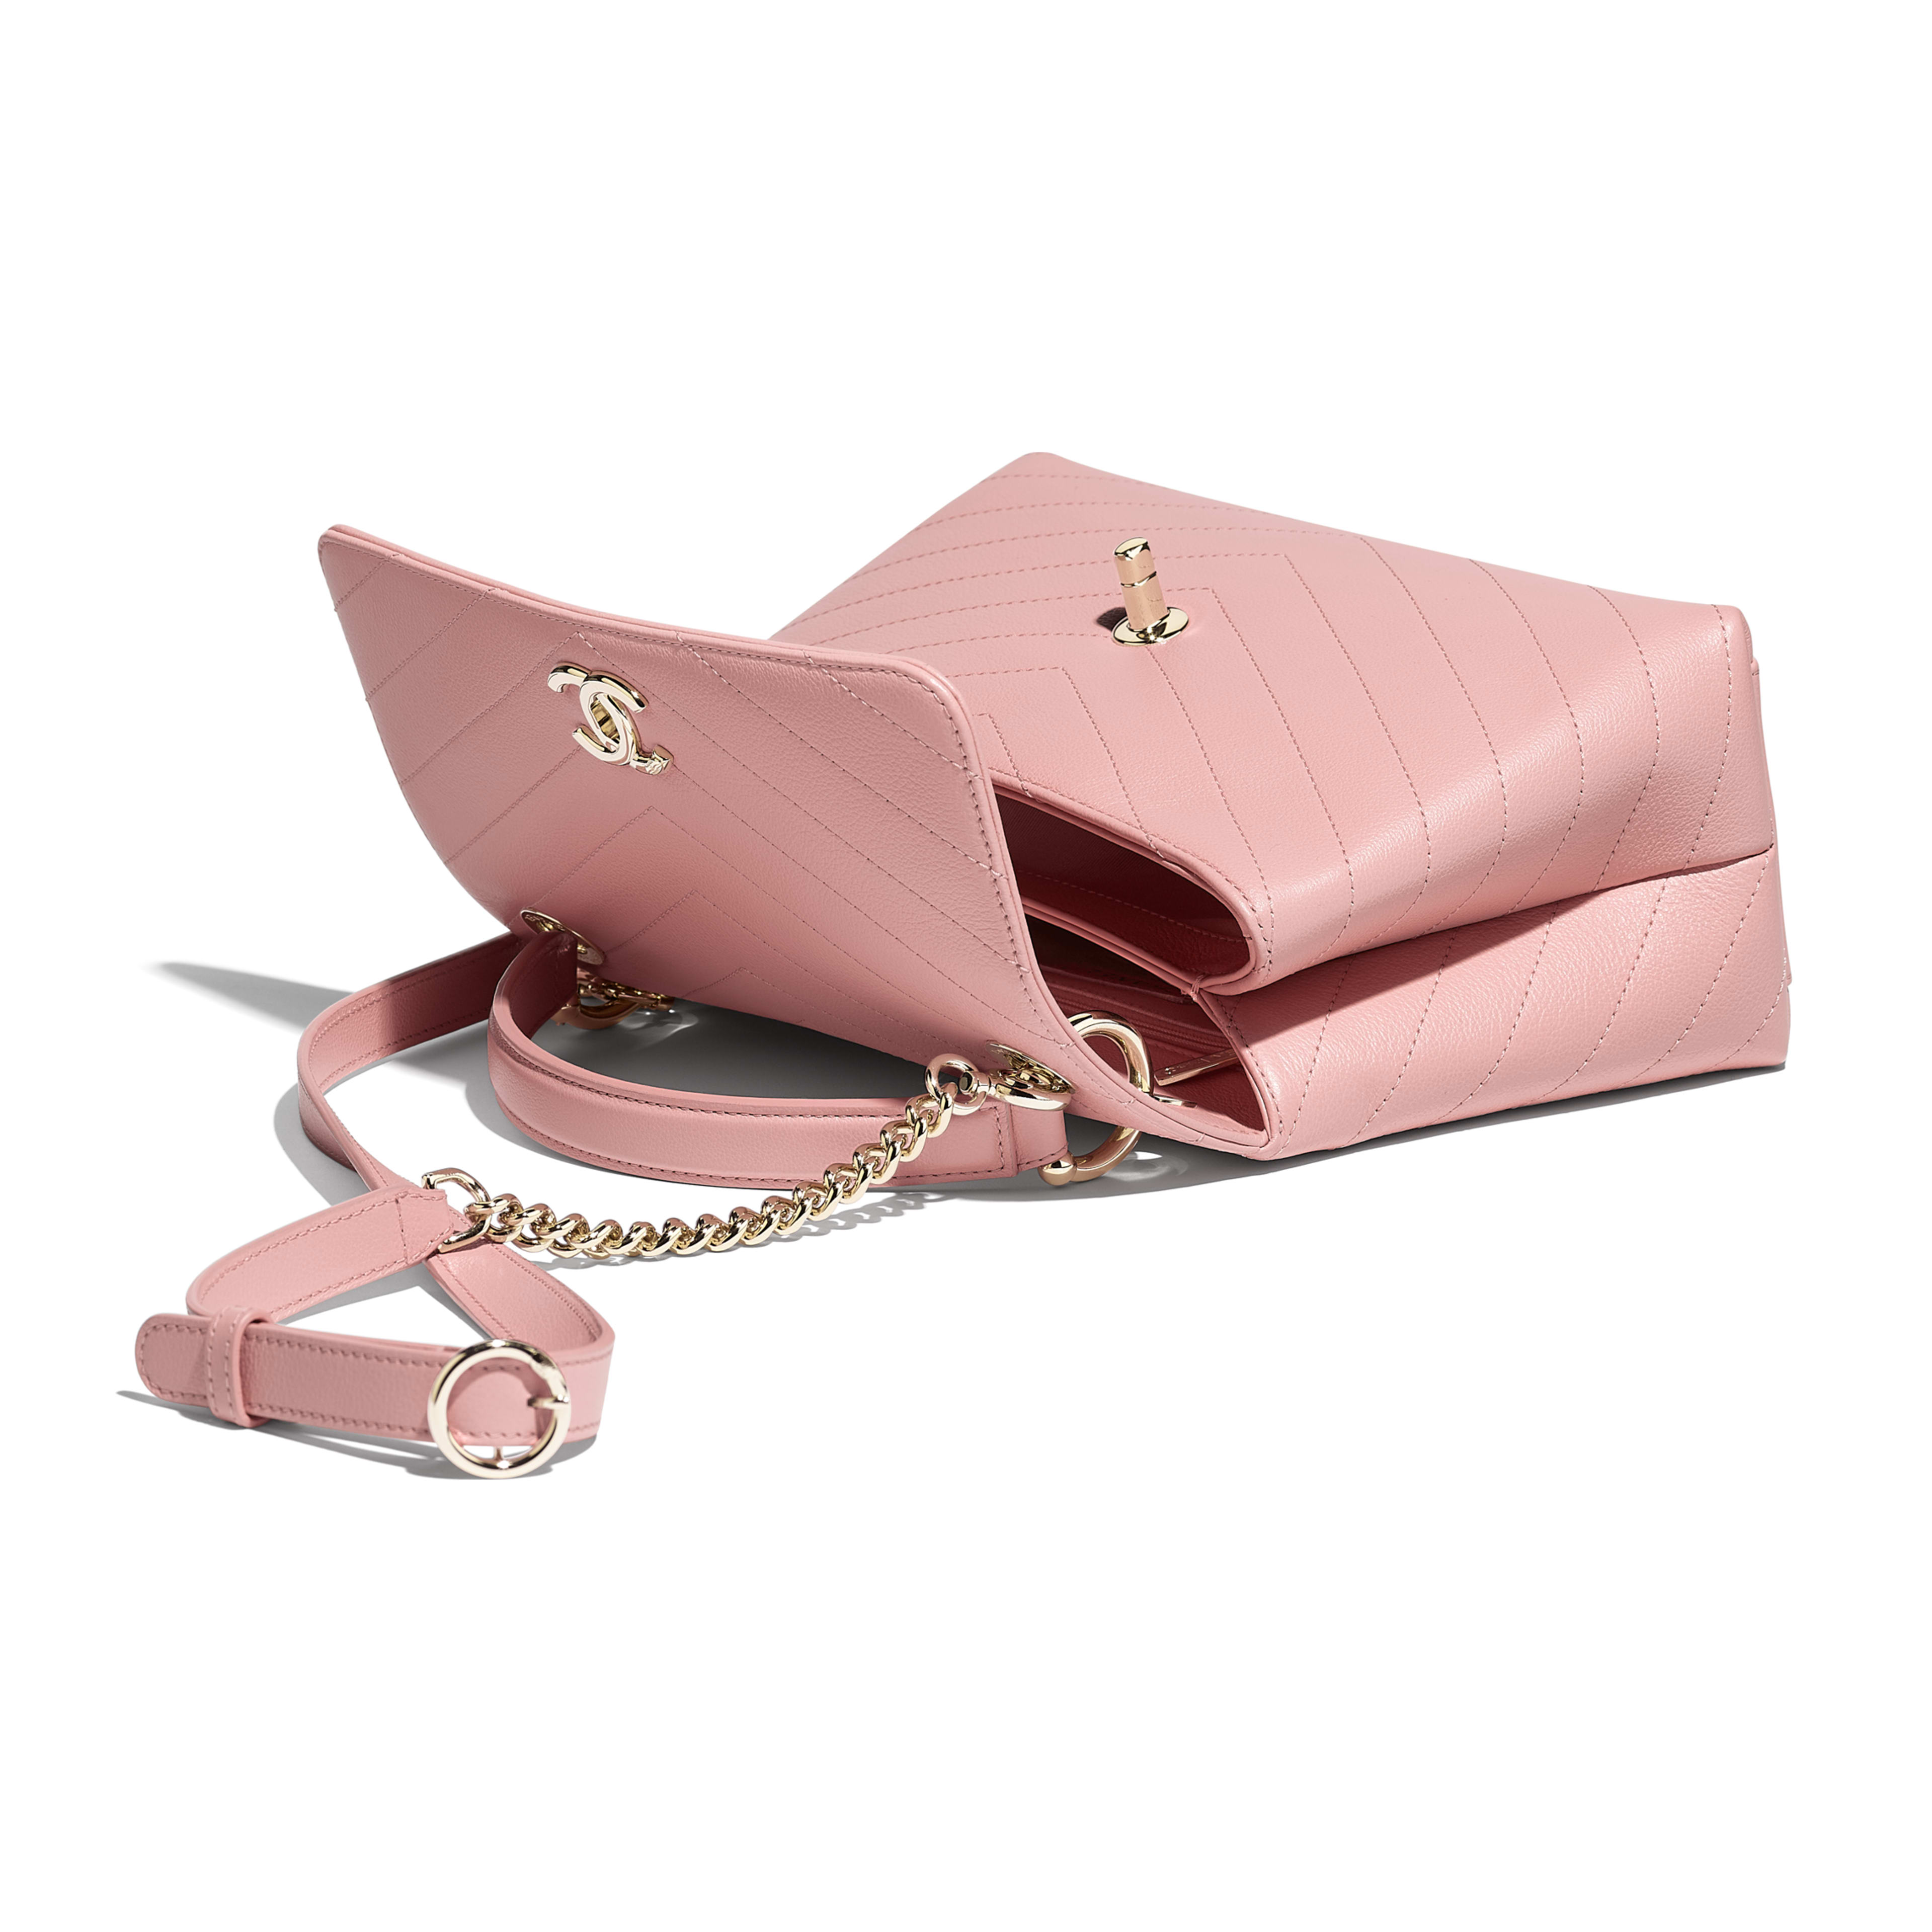 Small Flap Bag with Top Handle - Pink - Grained Calfskin & Gold-Tone Metal - Other view - see full sized version